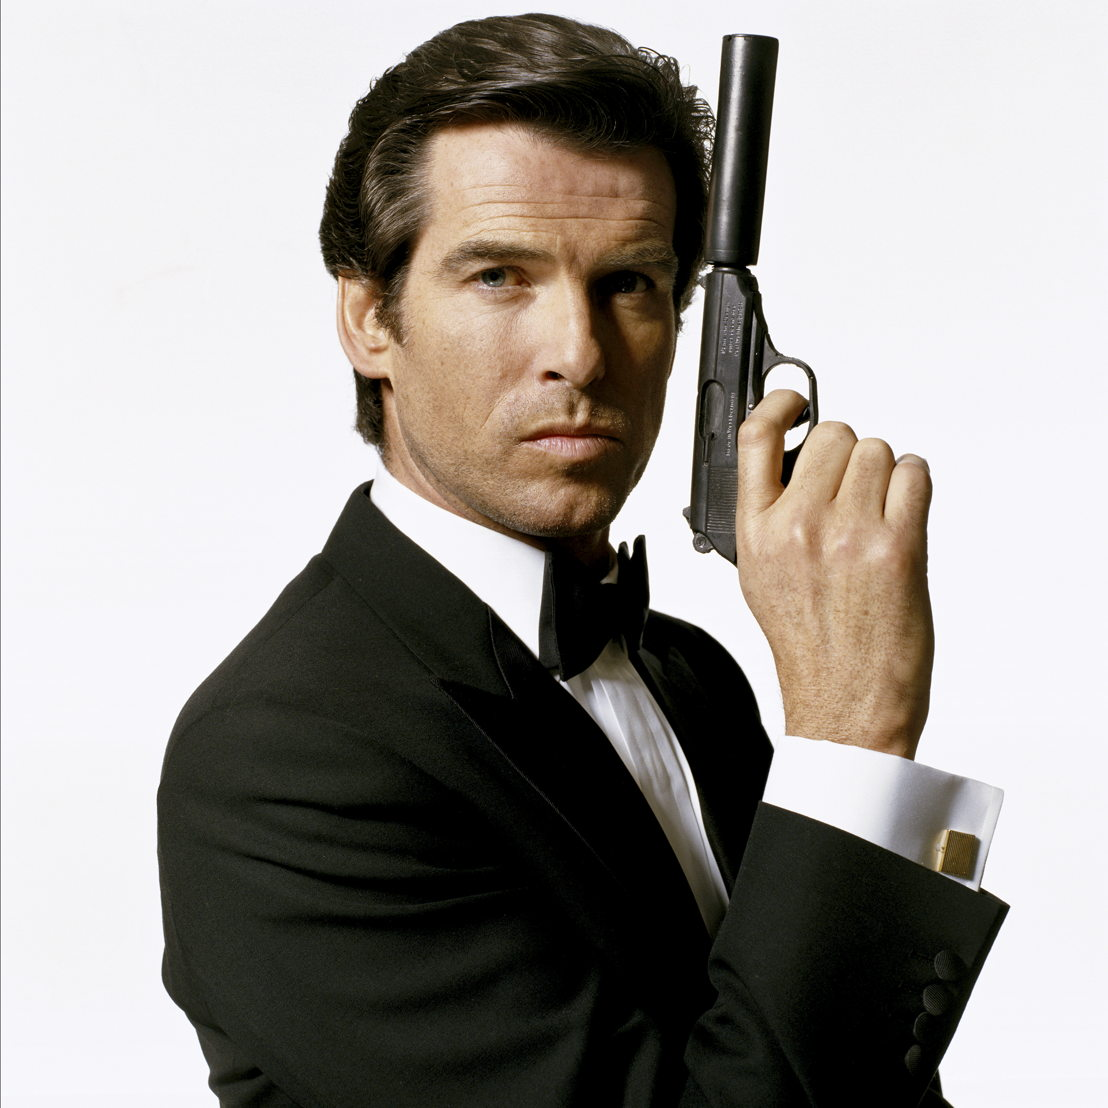 El actor irlandés Pierce Brosnan como el agente del servicio secreto, James Bond en 1995<br/>© Iconic Images / Terry O&#039;Neill